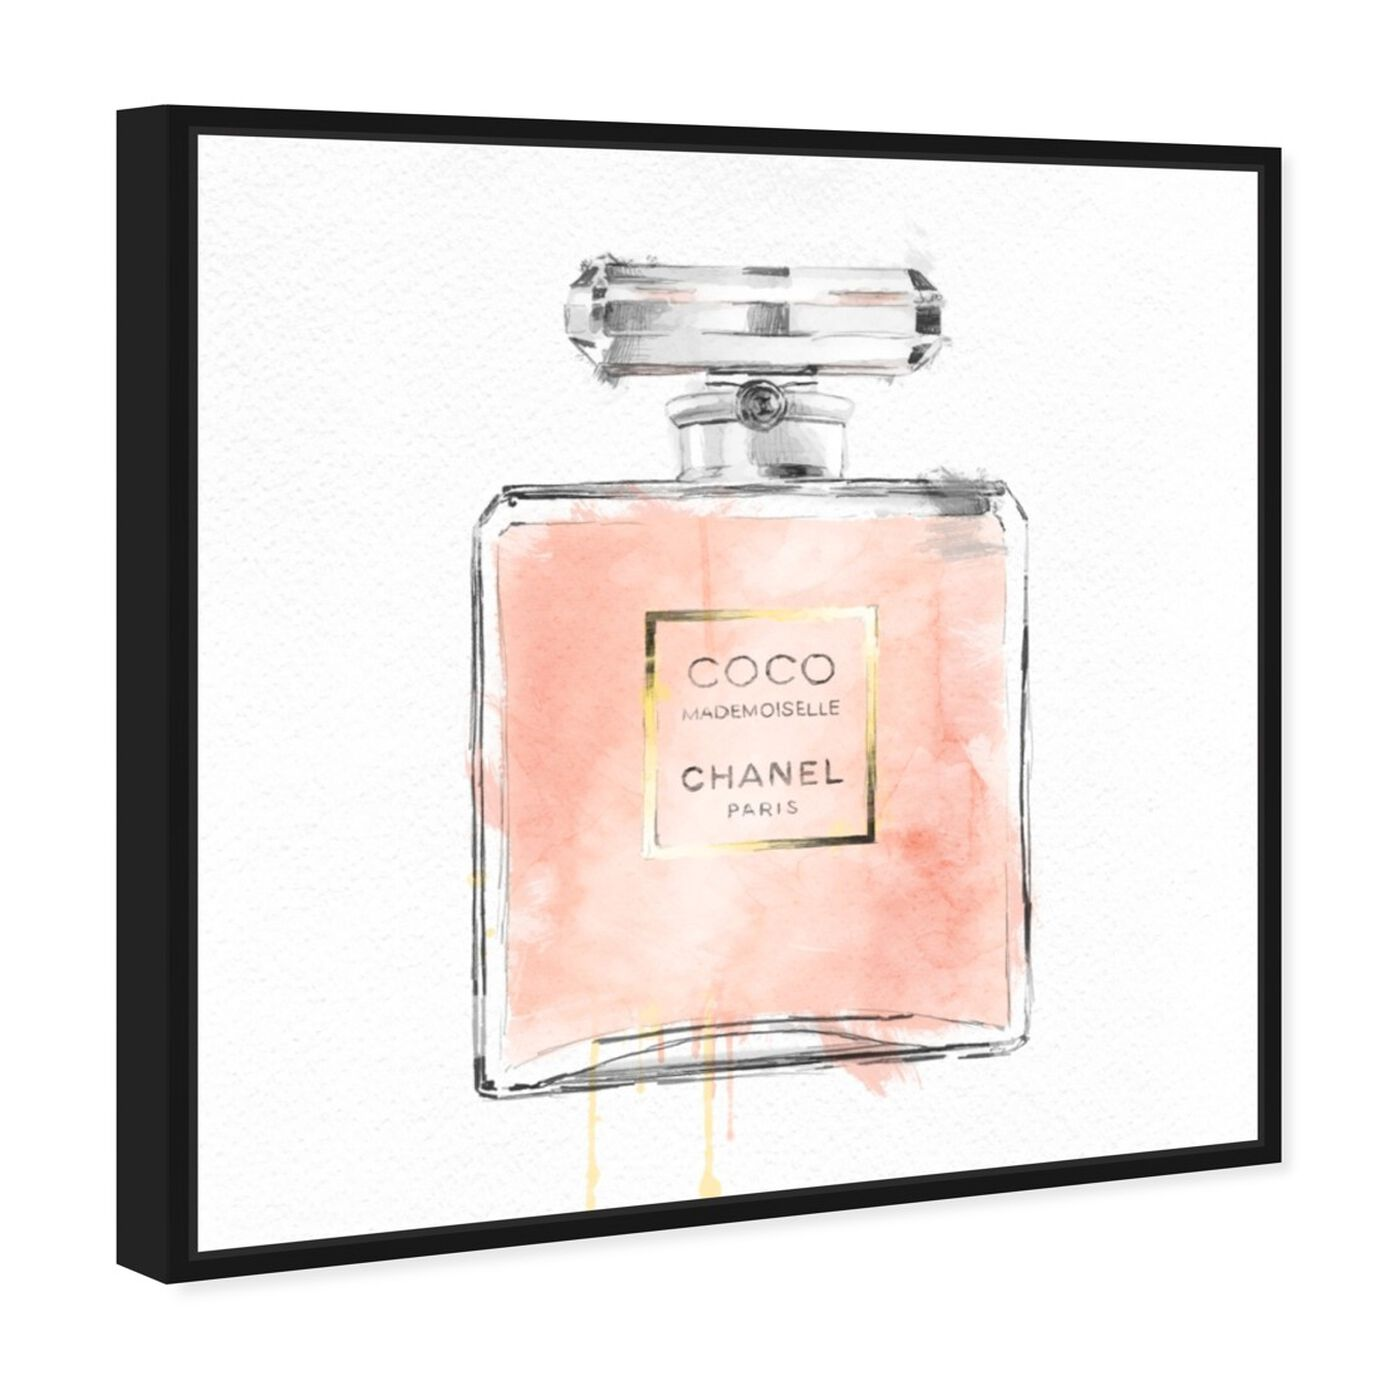 Angled view of Mademoiselle featuring fashion and glam and perfumes art.